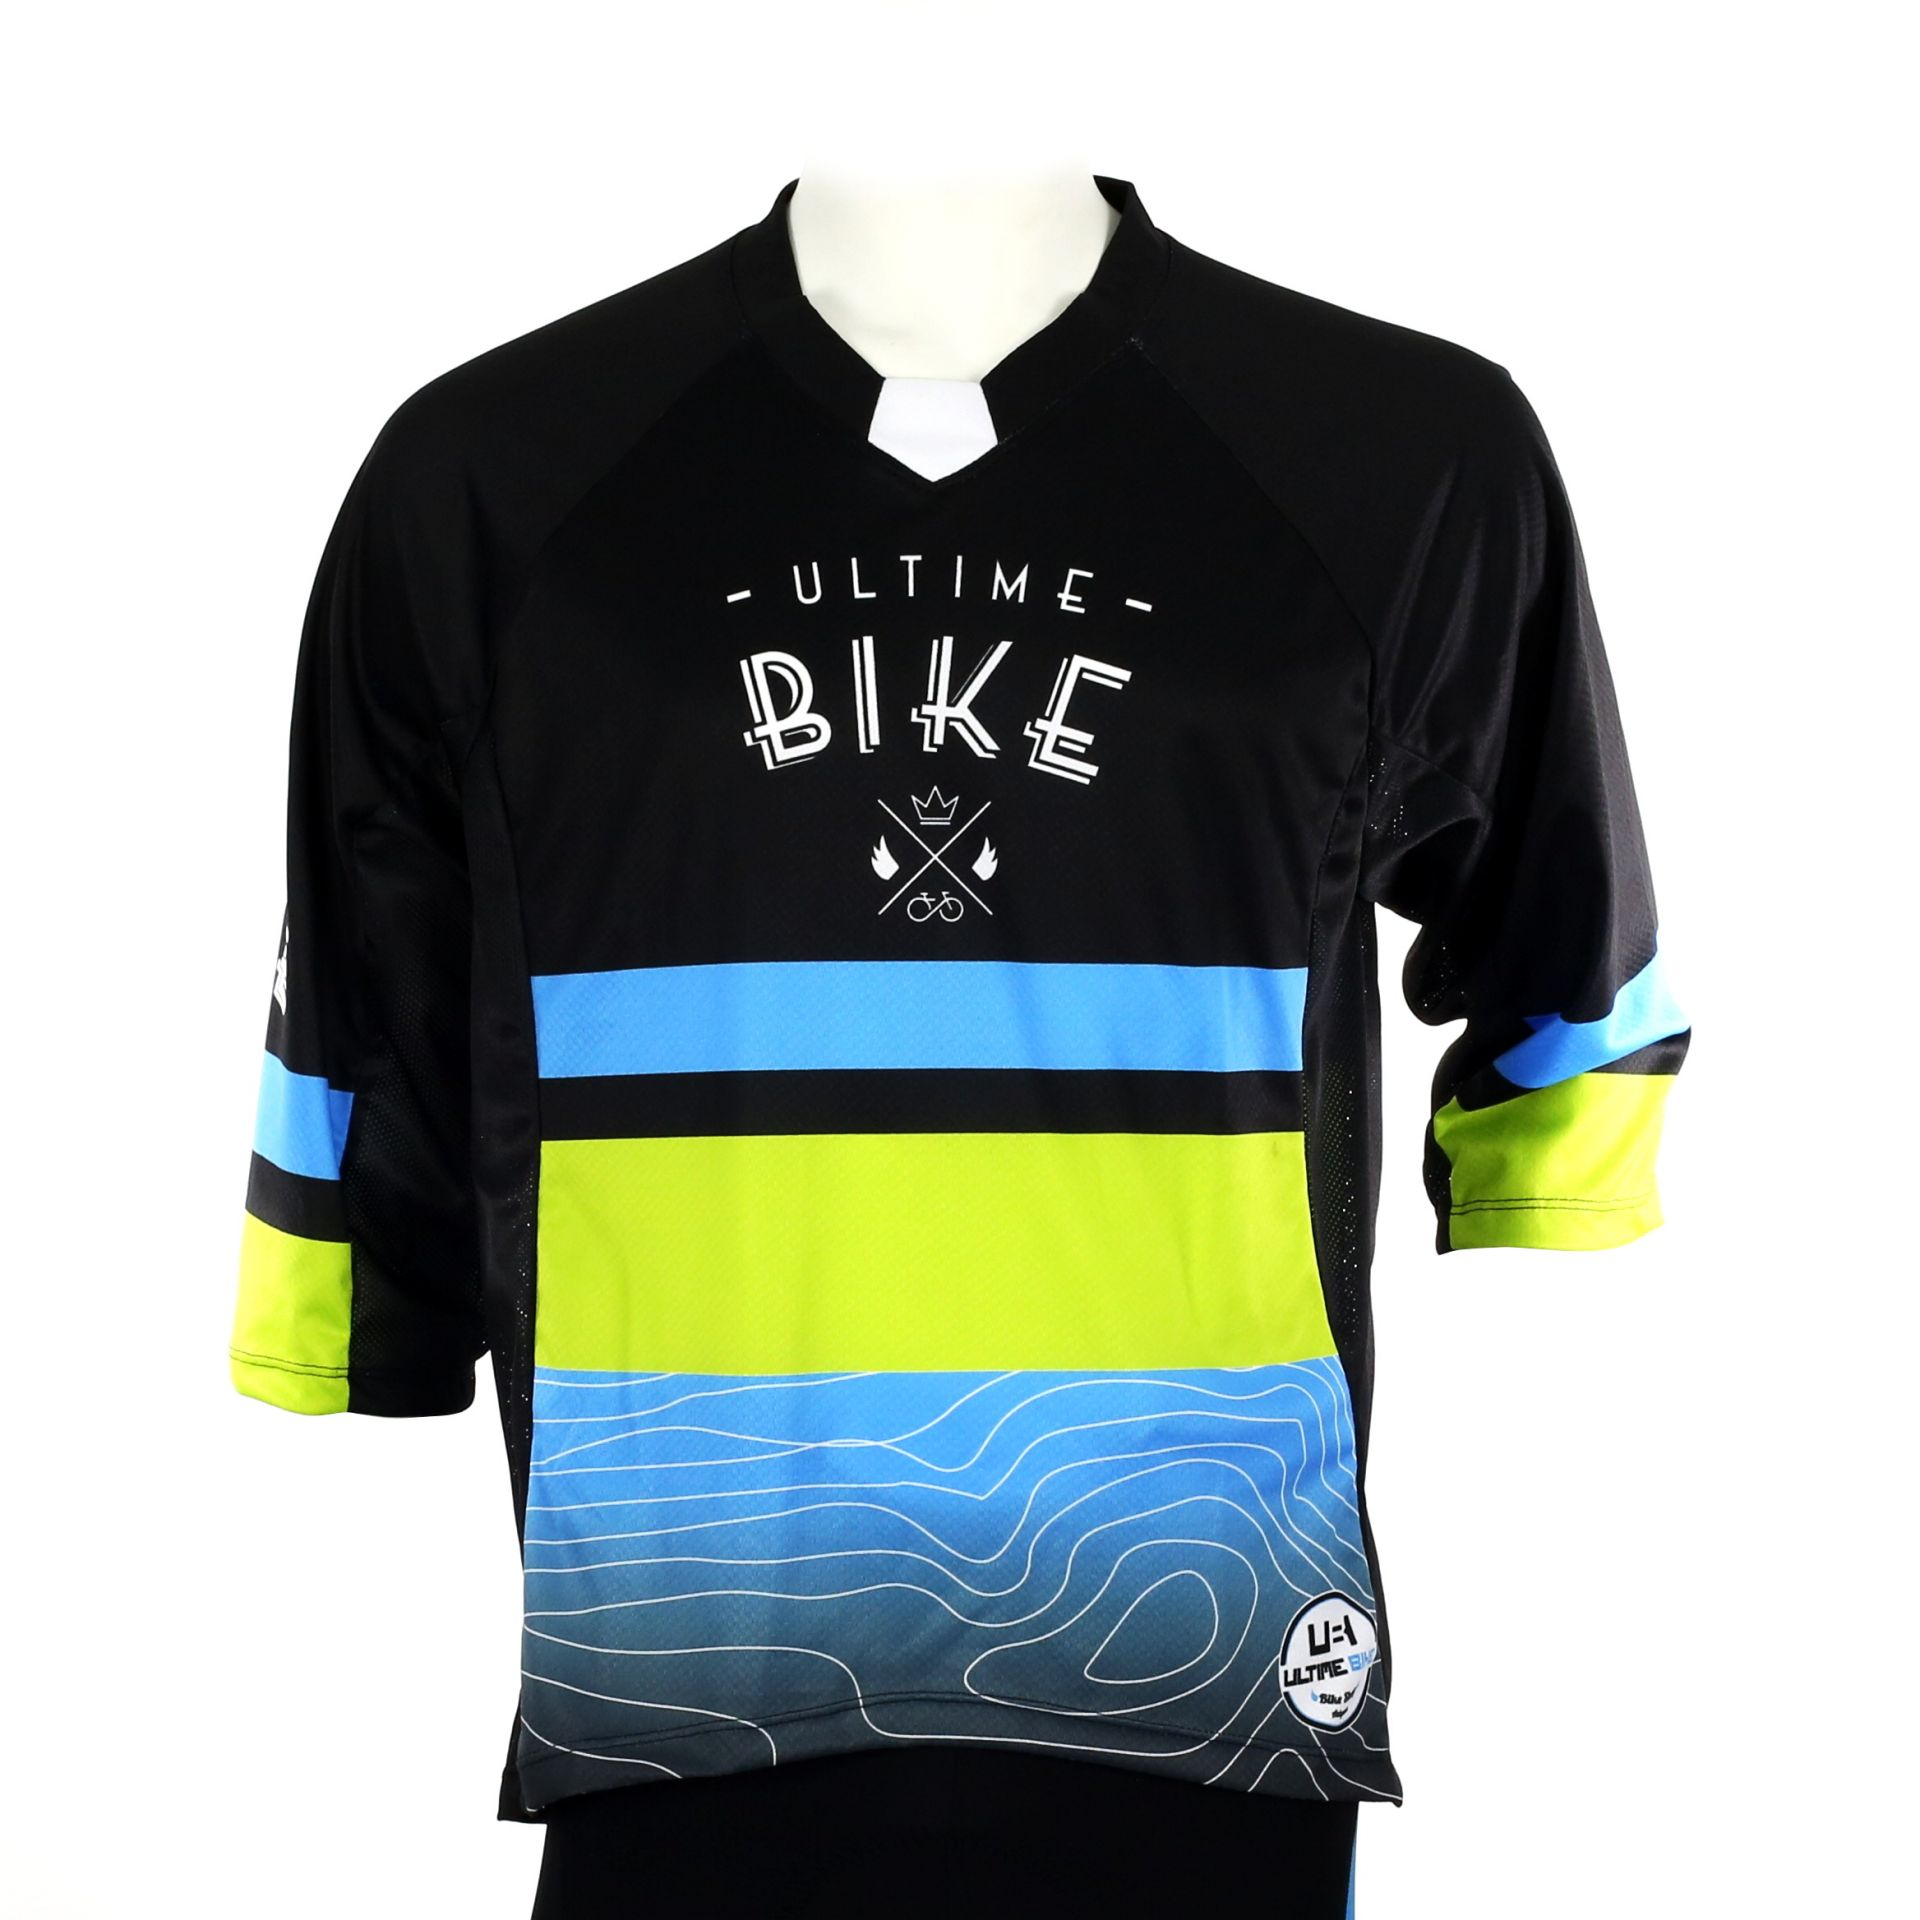 Maillot UltimeBike Enduro by TACTIC Manches 3/4 - S